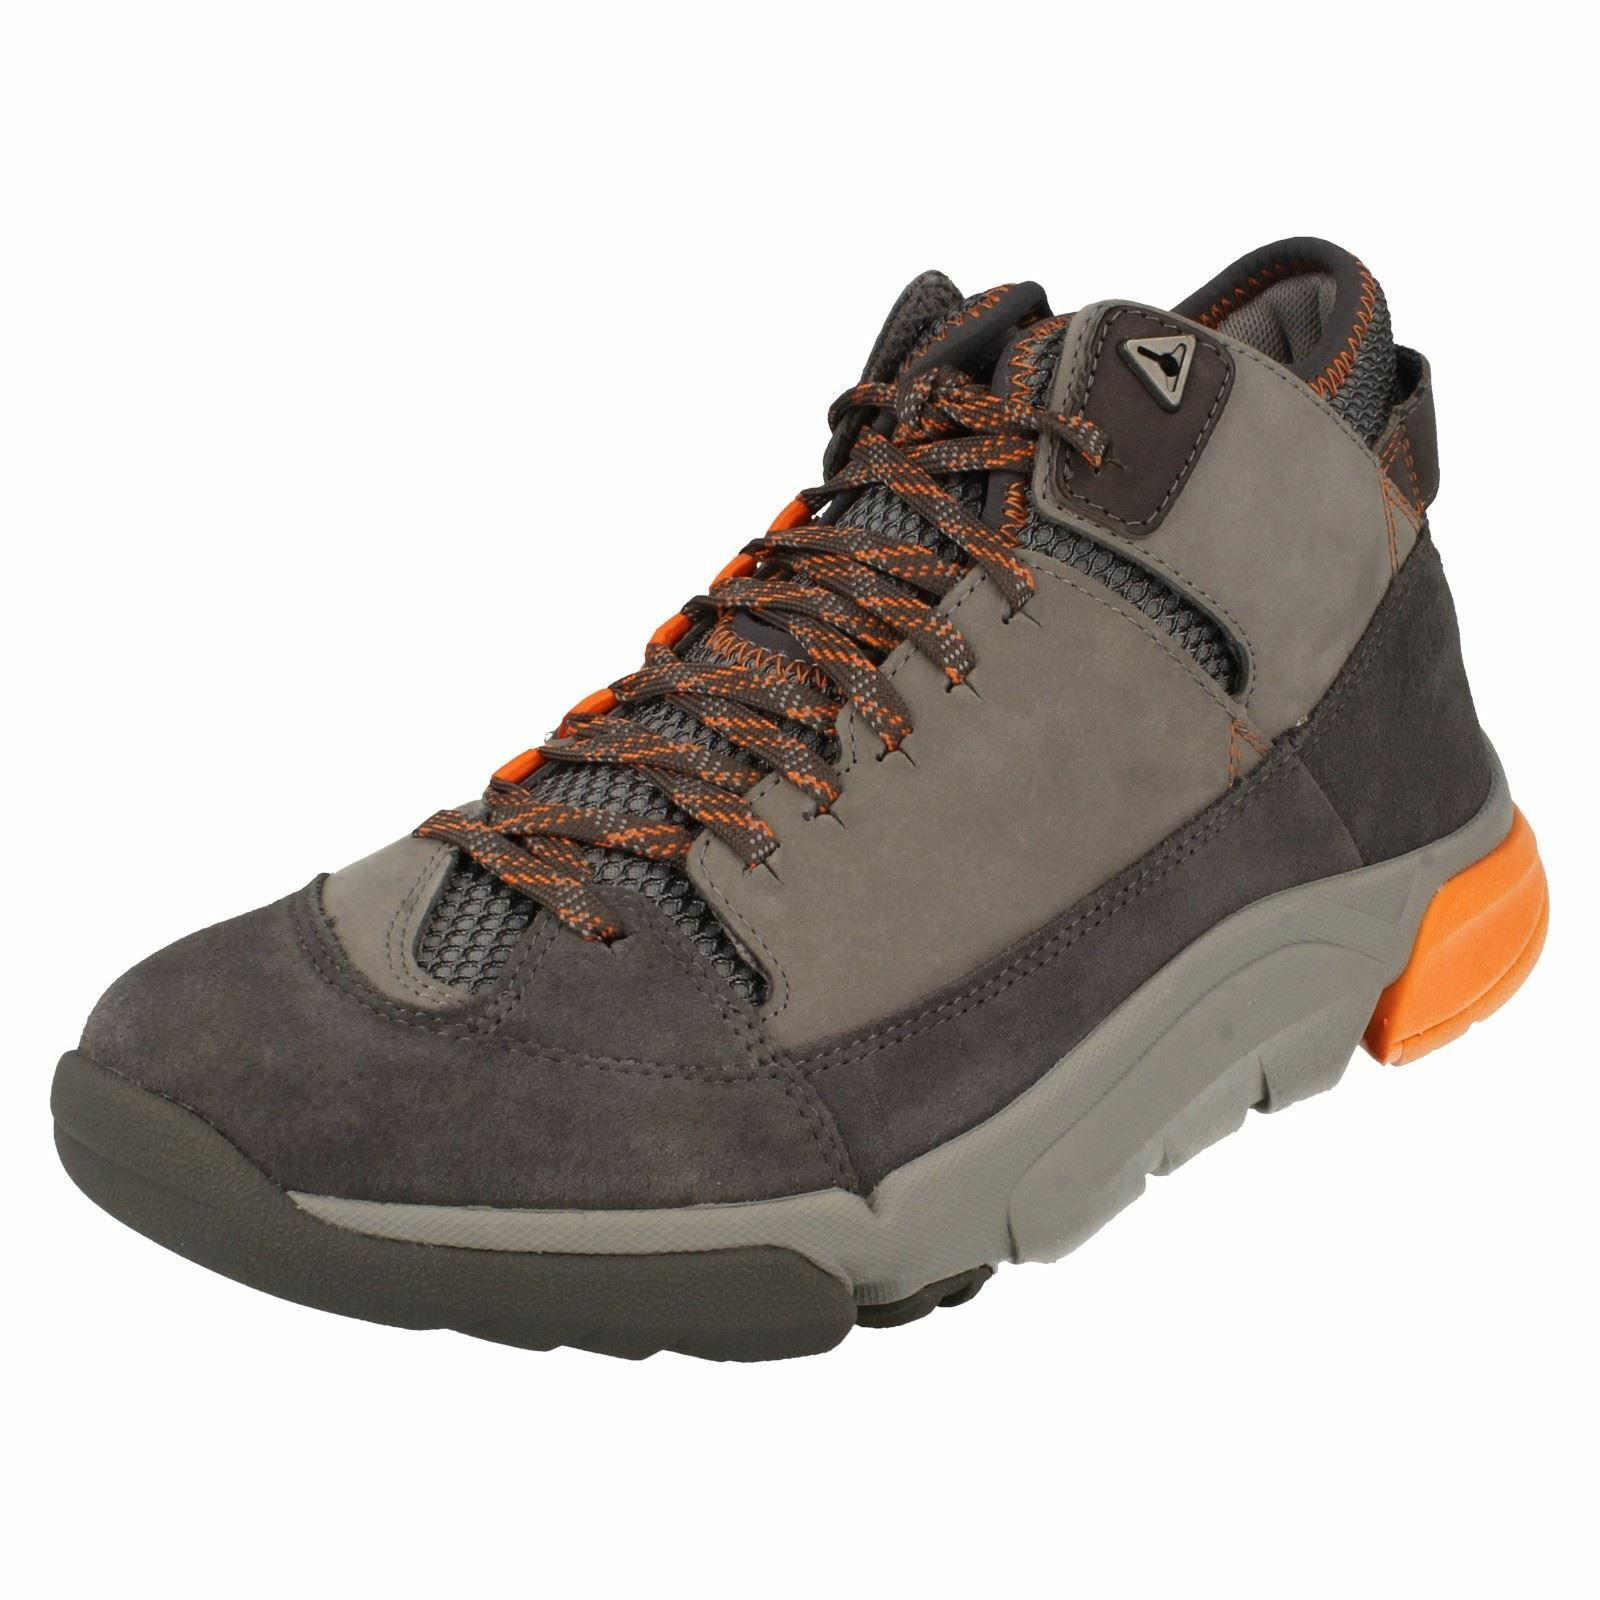 593cde6eabc0 Mens Outdoor Boots Tri Outflex Clarks nrclzs3691-Boots